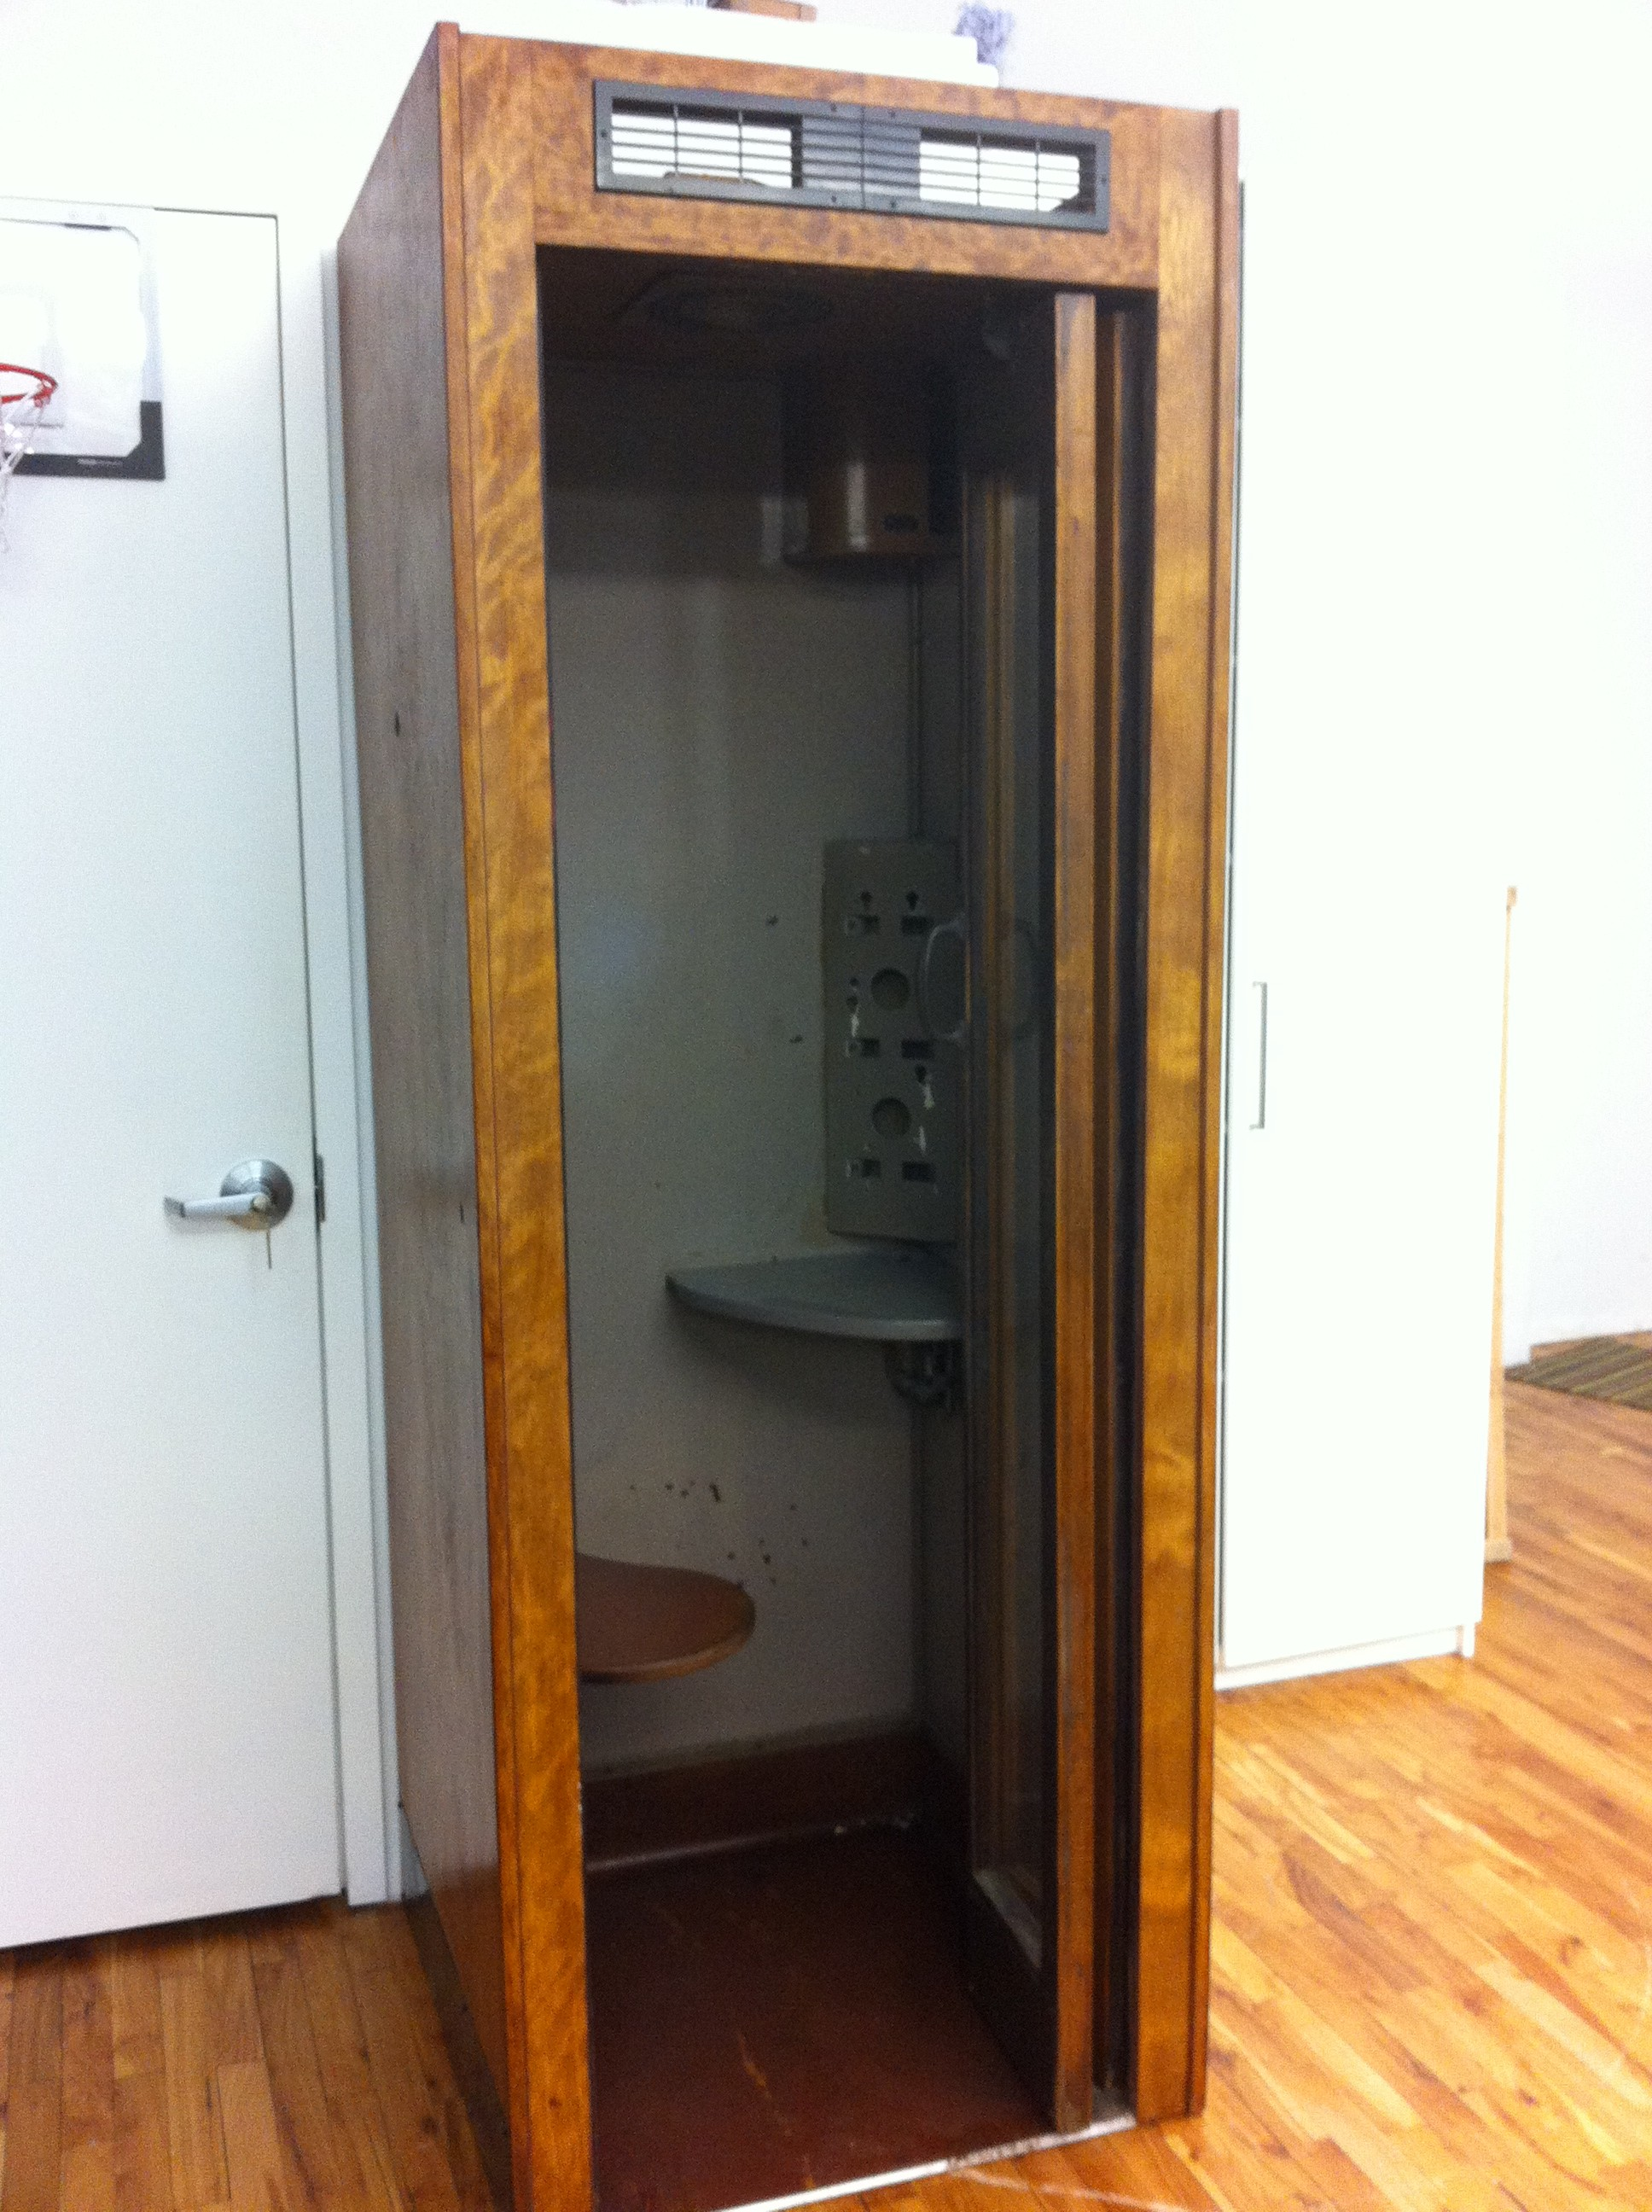 A pic of vintage phone booth with door open